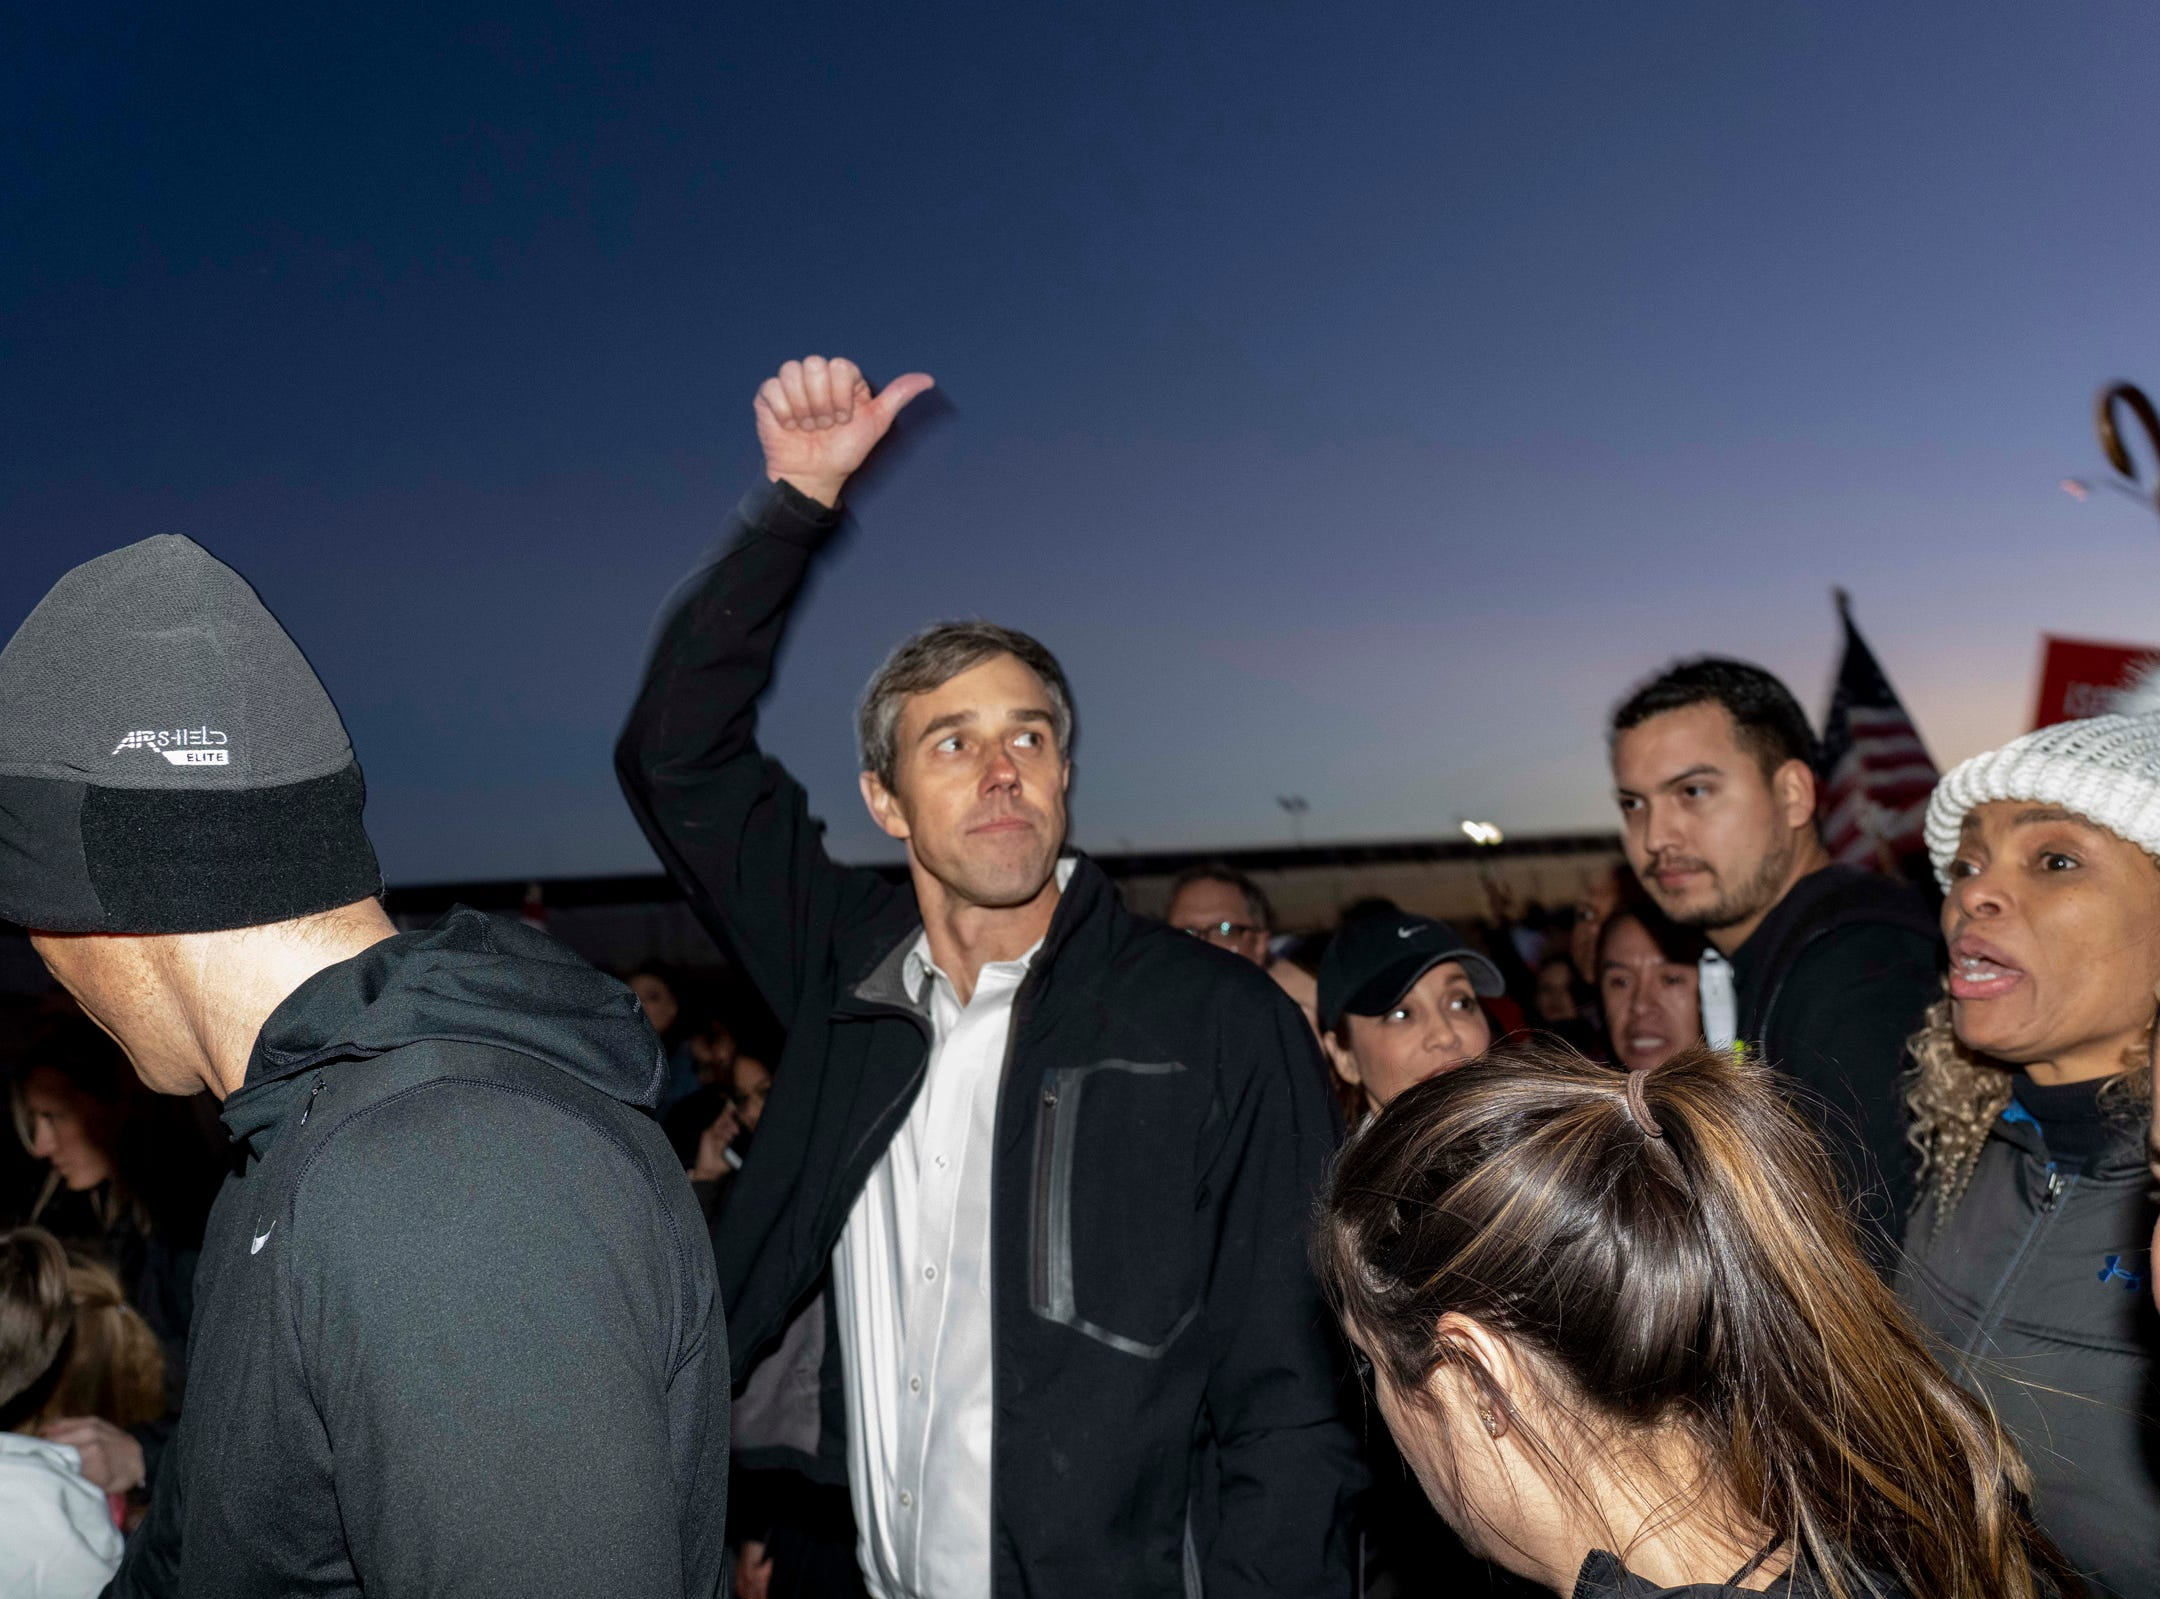 2/11/19 6:06:43 PM -- El Paso, TX, U.S.A  -- A counter-rally led by former U.S. Senate candidate Beto O'Rourke joined the March for Truth with hundreds of people along with Border Network for Human Rights, Women's March, to protest against President Trump campaign rally near El Paso County Coliseum on Feb. 11, 2019.